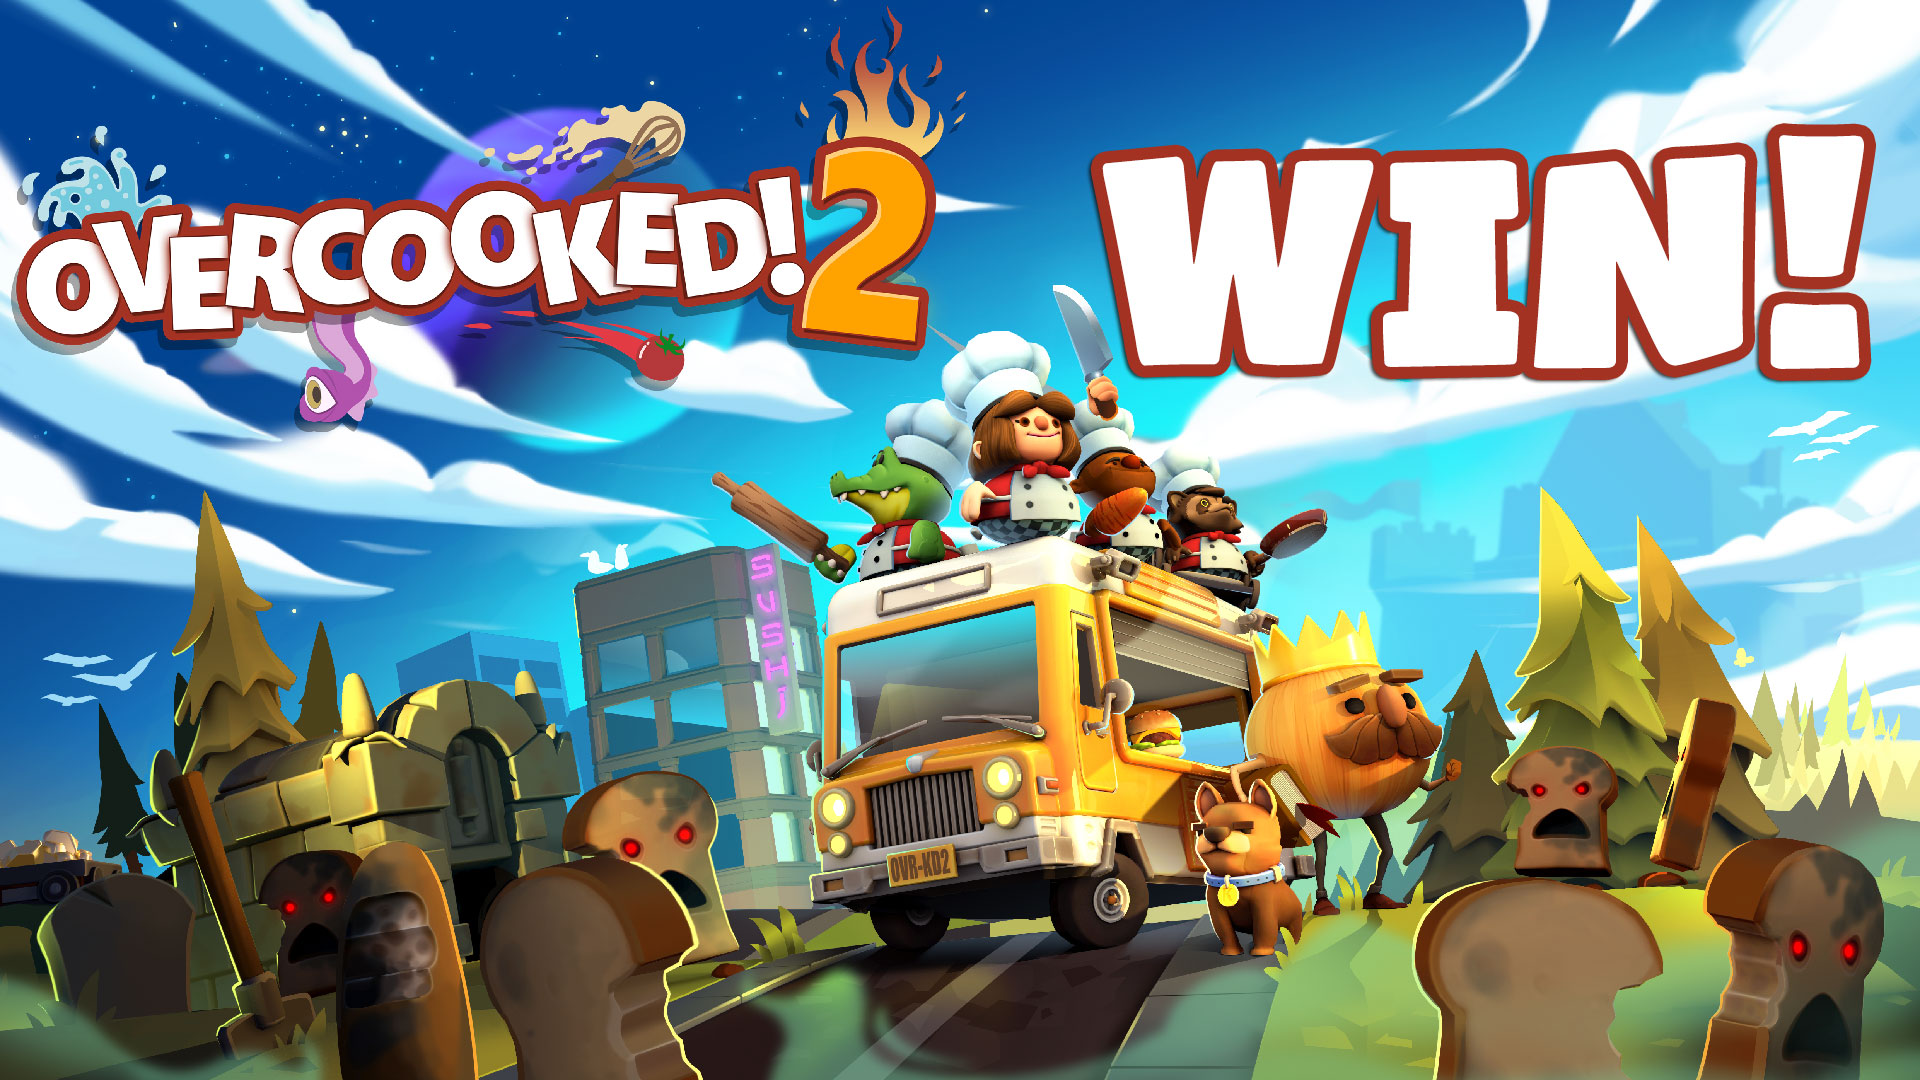 Overcooked! 2: Hat-A-Twoey Instagram Competition!